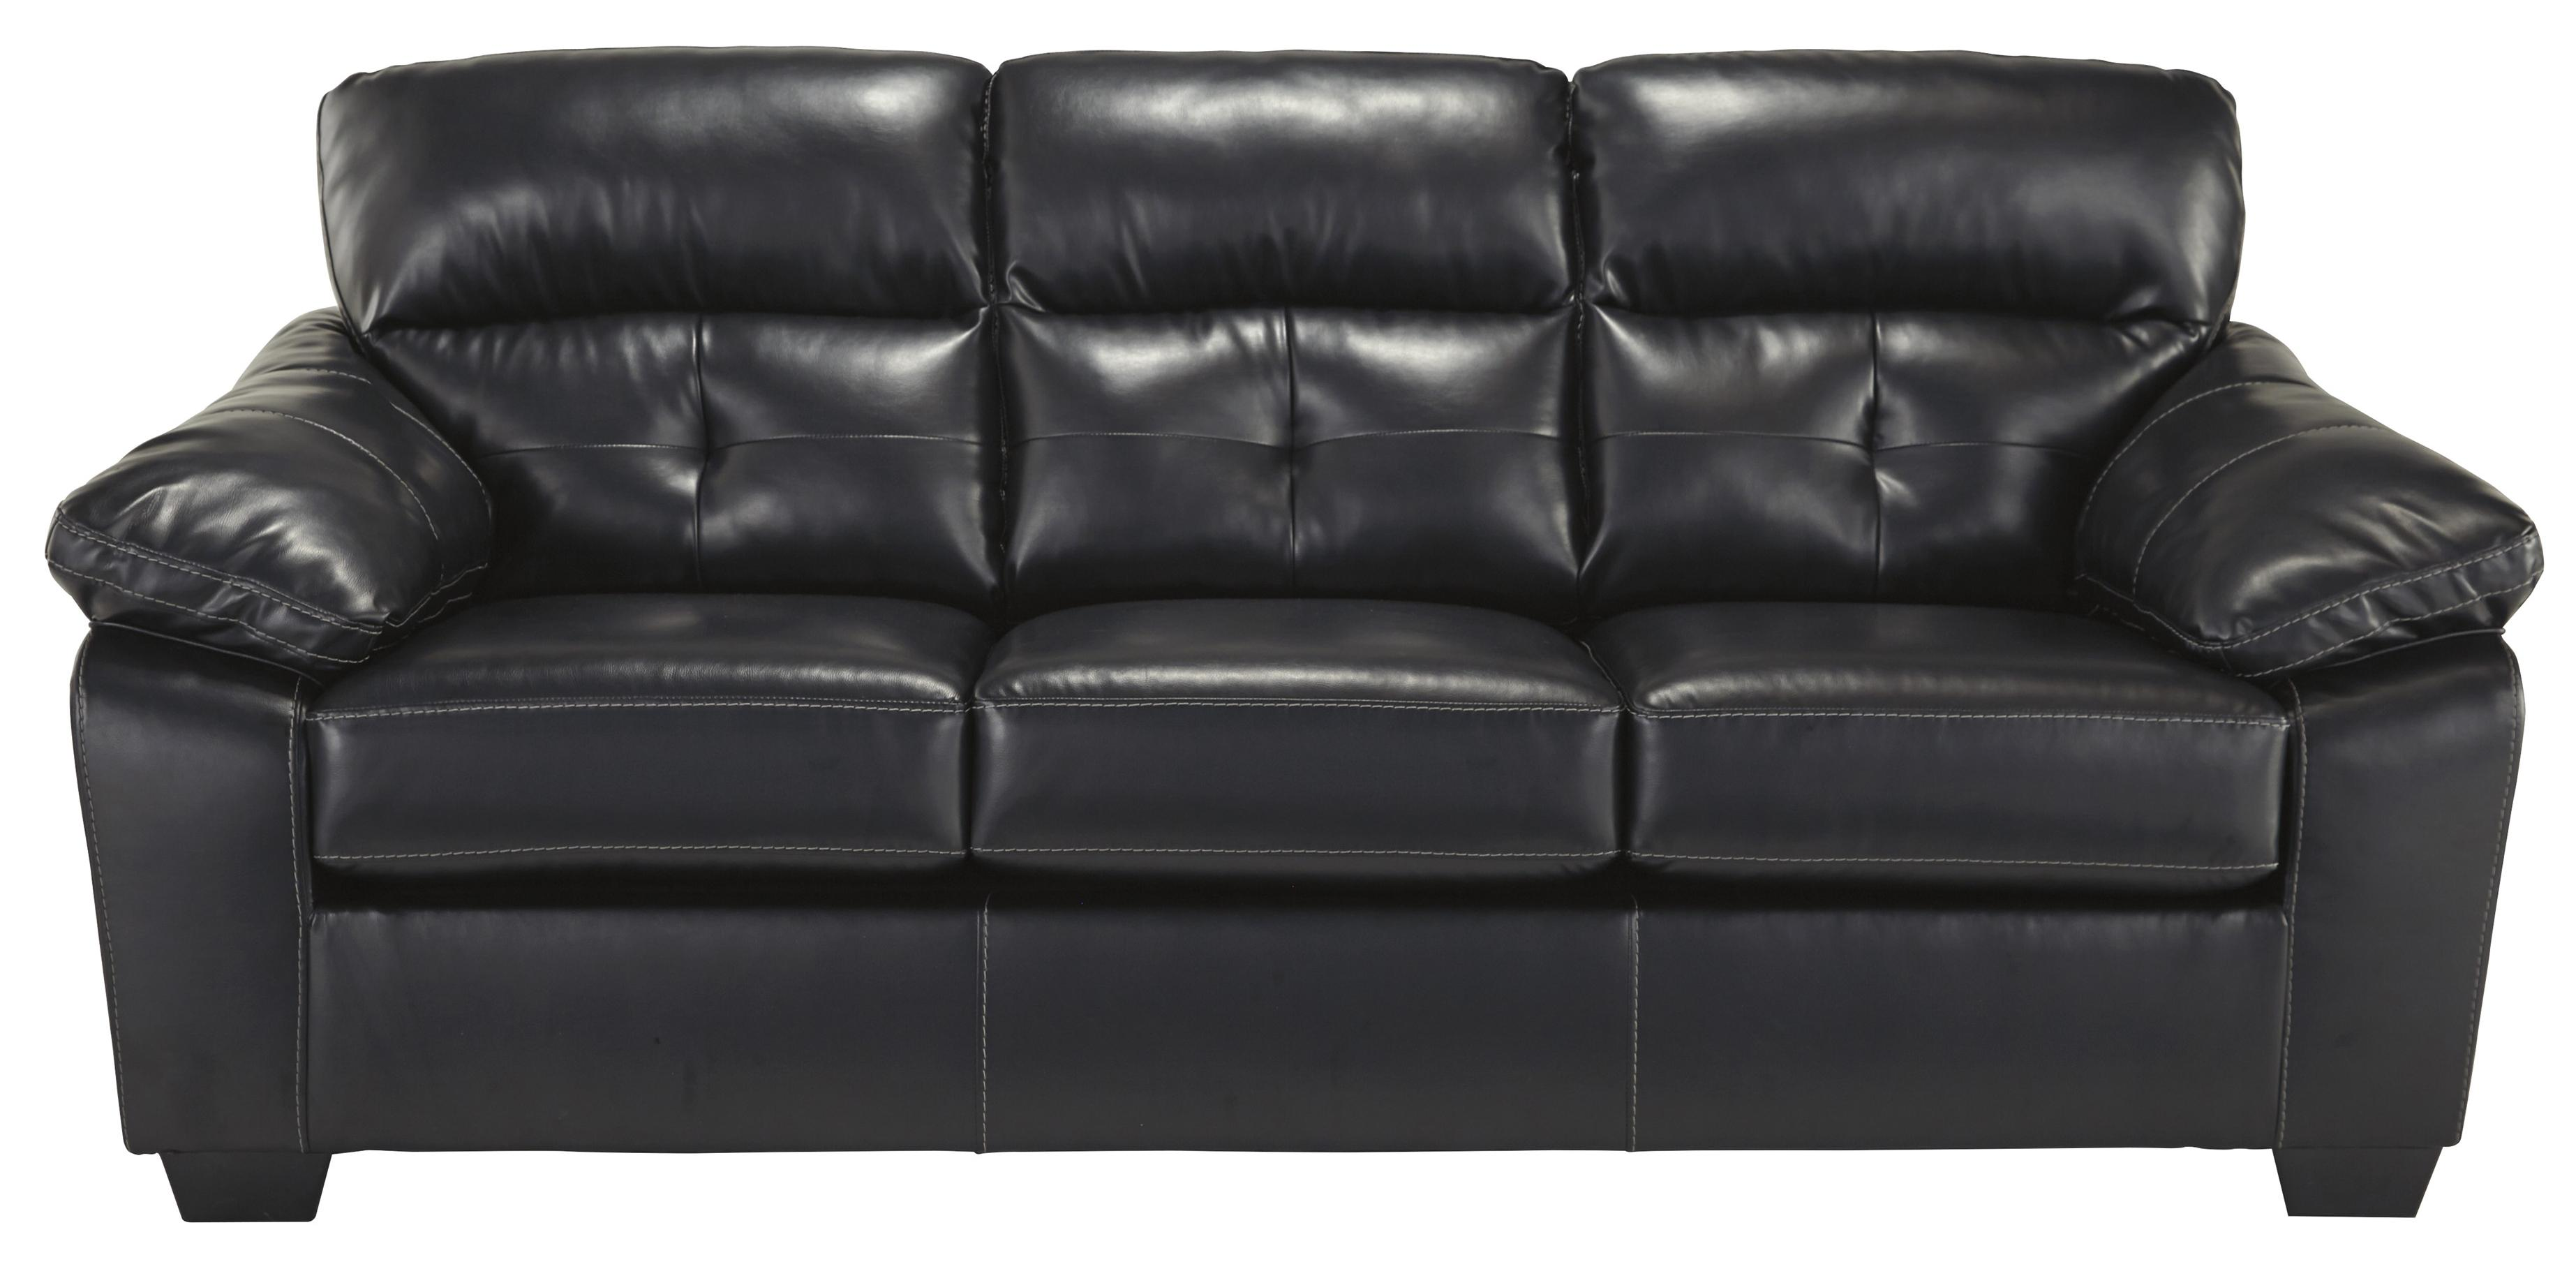 Benchcraft Bastrop DuraBlend - Midnight Full Sofa Sleeper - Item Number: 4460136